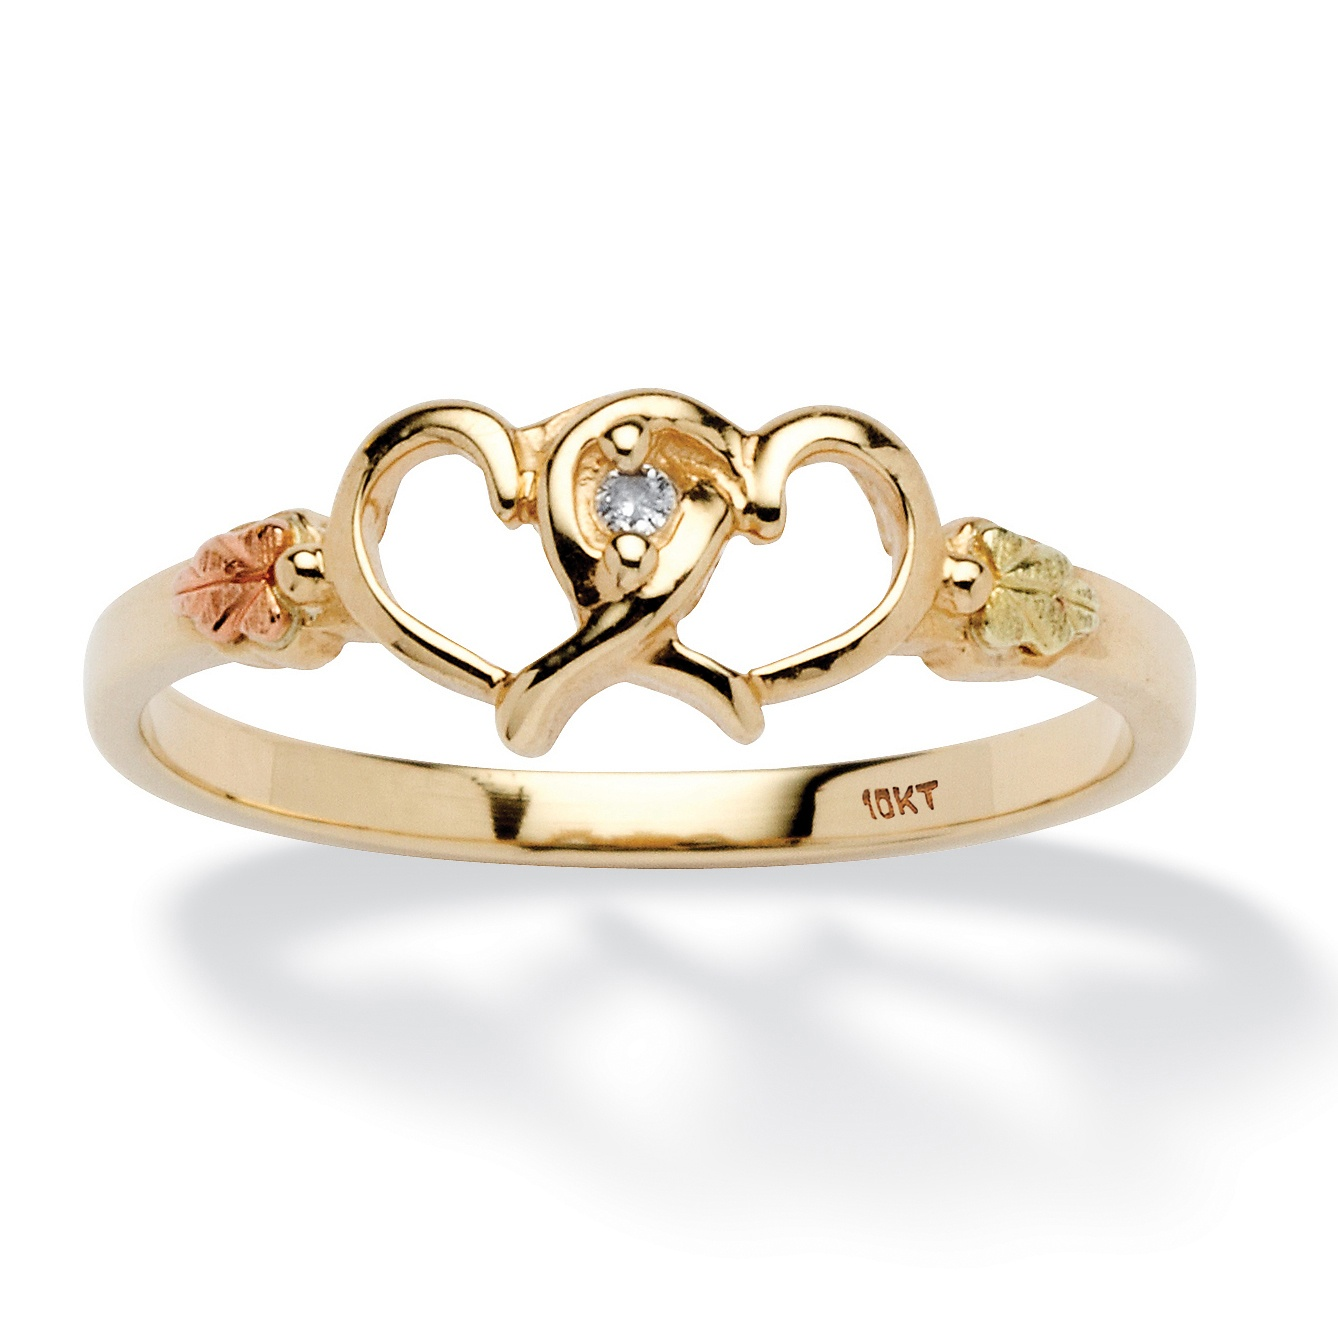 Round Diamond Accent Interlocking Hearts Ring in 12k Black Hills and 10k Gold